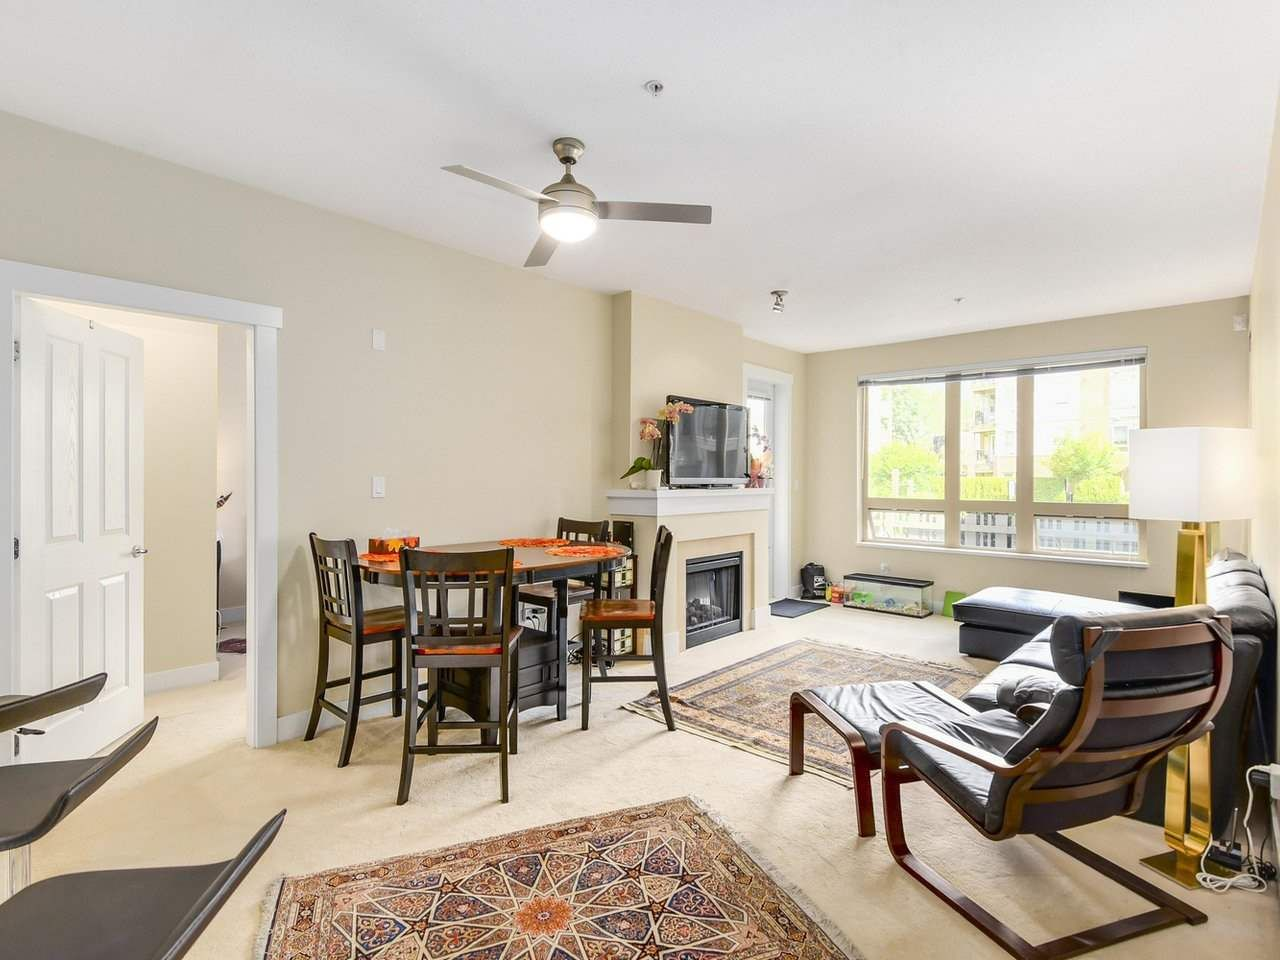 Photo 2: Photos: 106 2601 WHITELEY COURT in North Vancouver: Lynn Valley Condo for sale : MLS®# R2186381